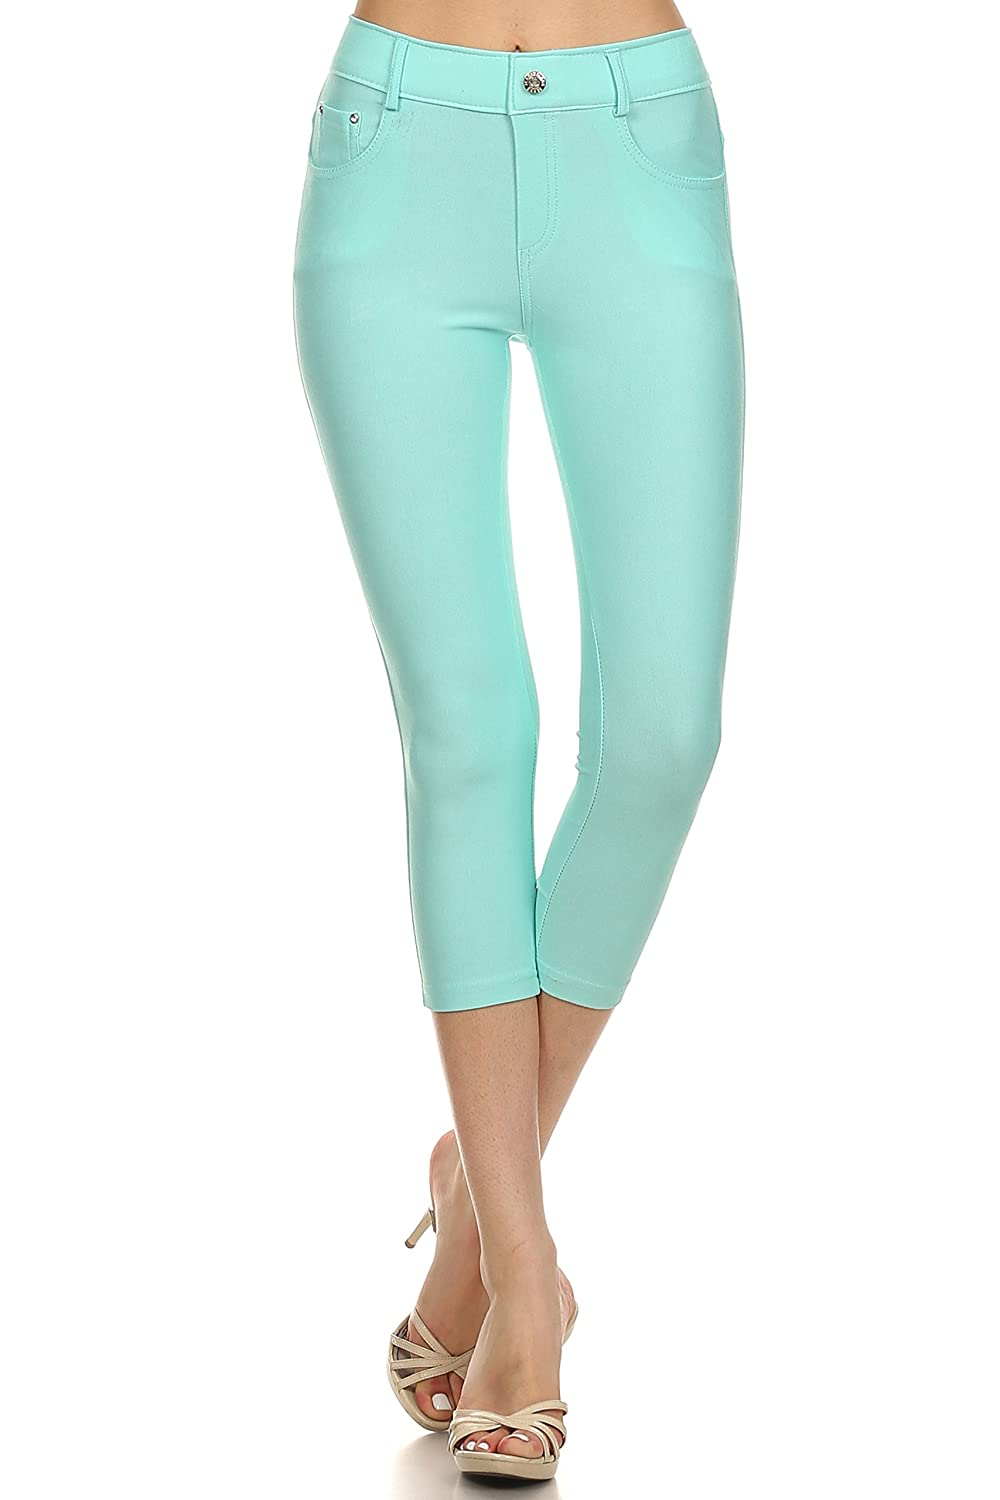 c700a88d9028d ICONOFLASH Women's Stretch Capri Jeggings - Slimming Cotton Pull On Jean  Like Cropped Leggings with Plus Size at Amazon Women's Clothing store: